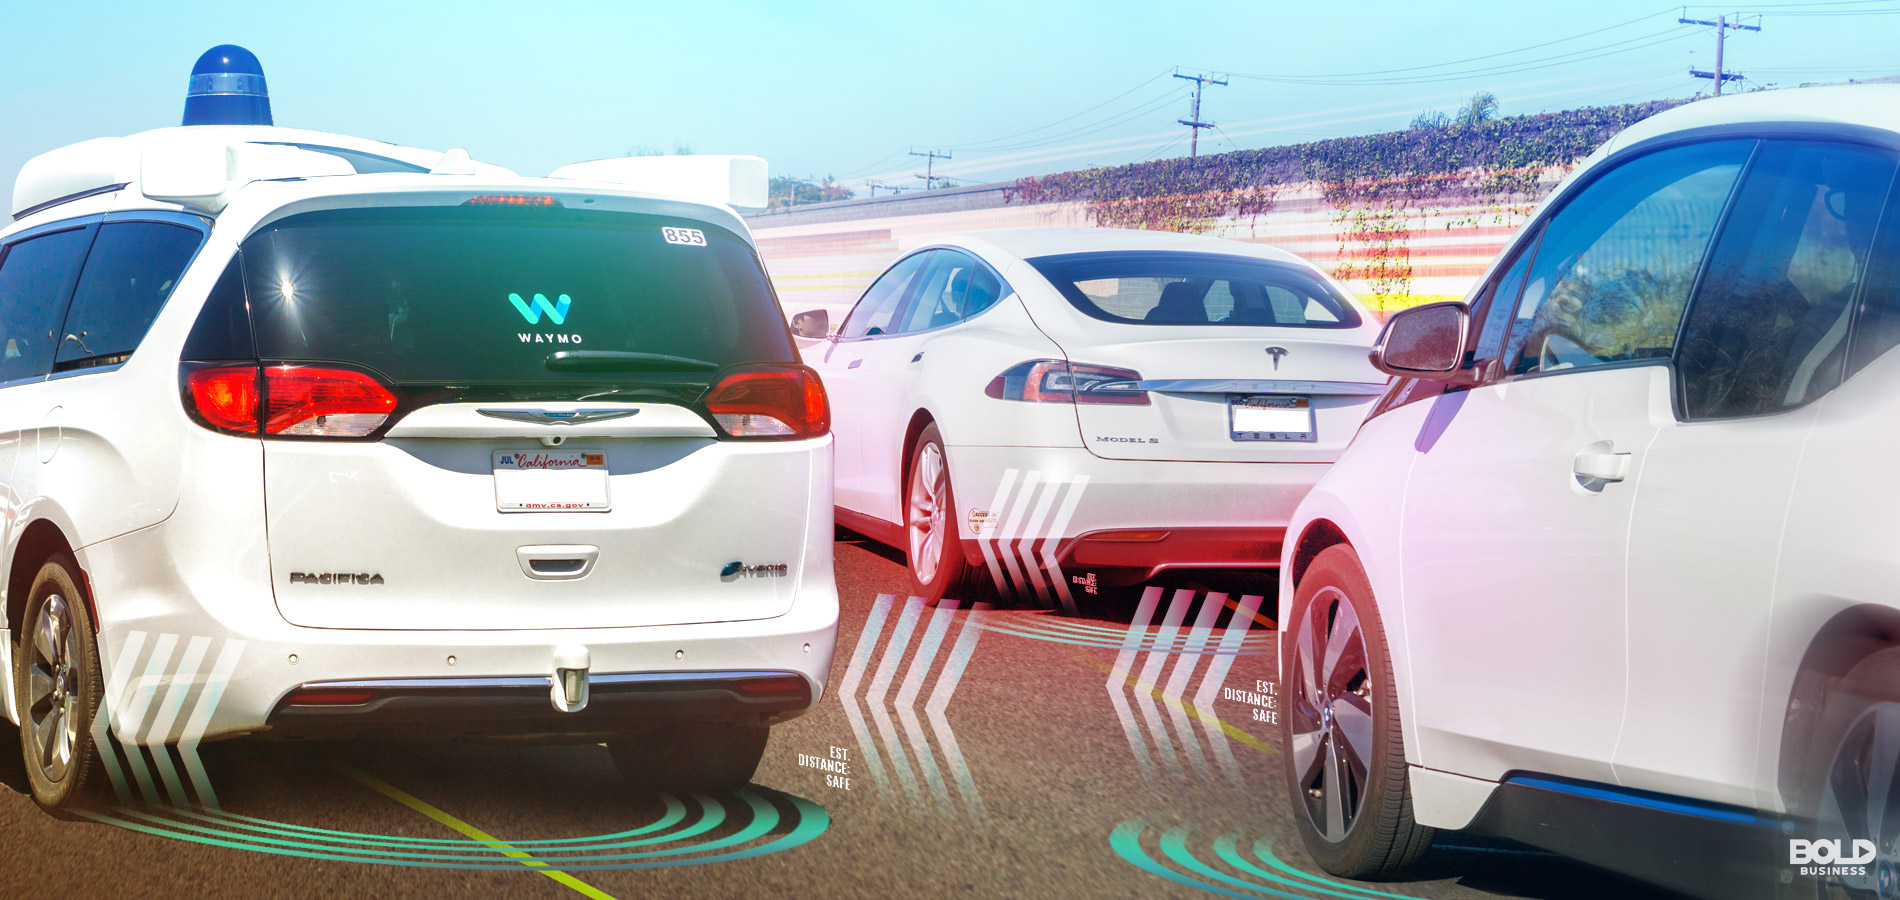 self-driving cars on the road with autonomous cars